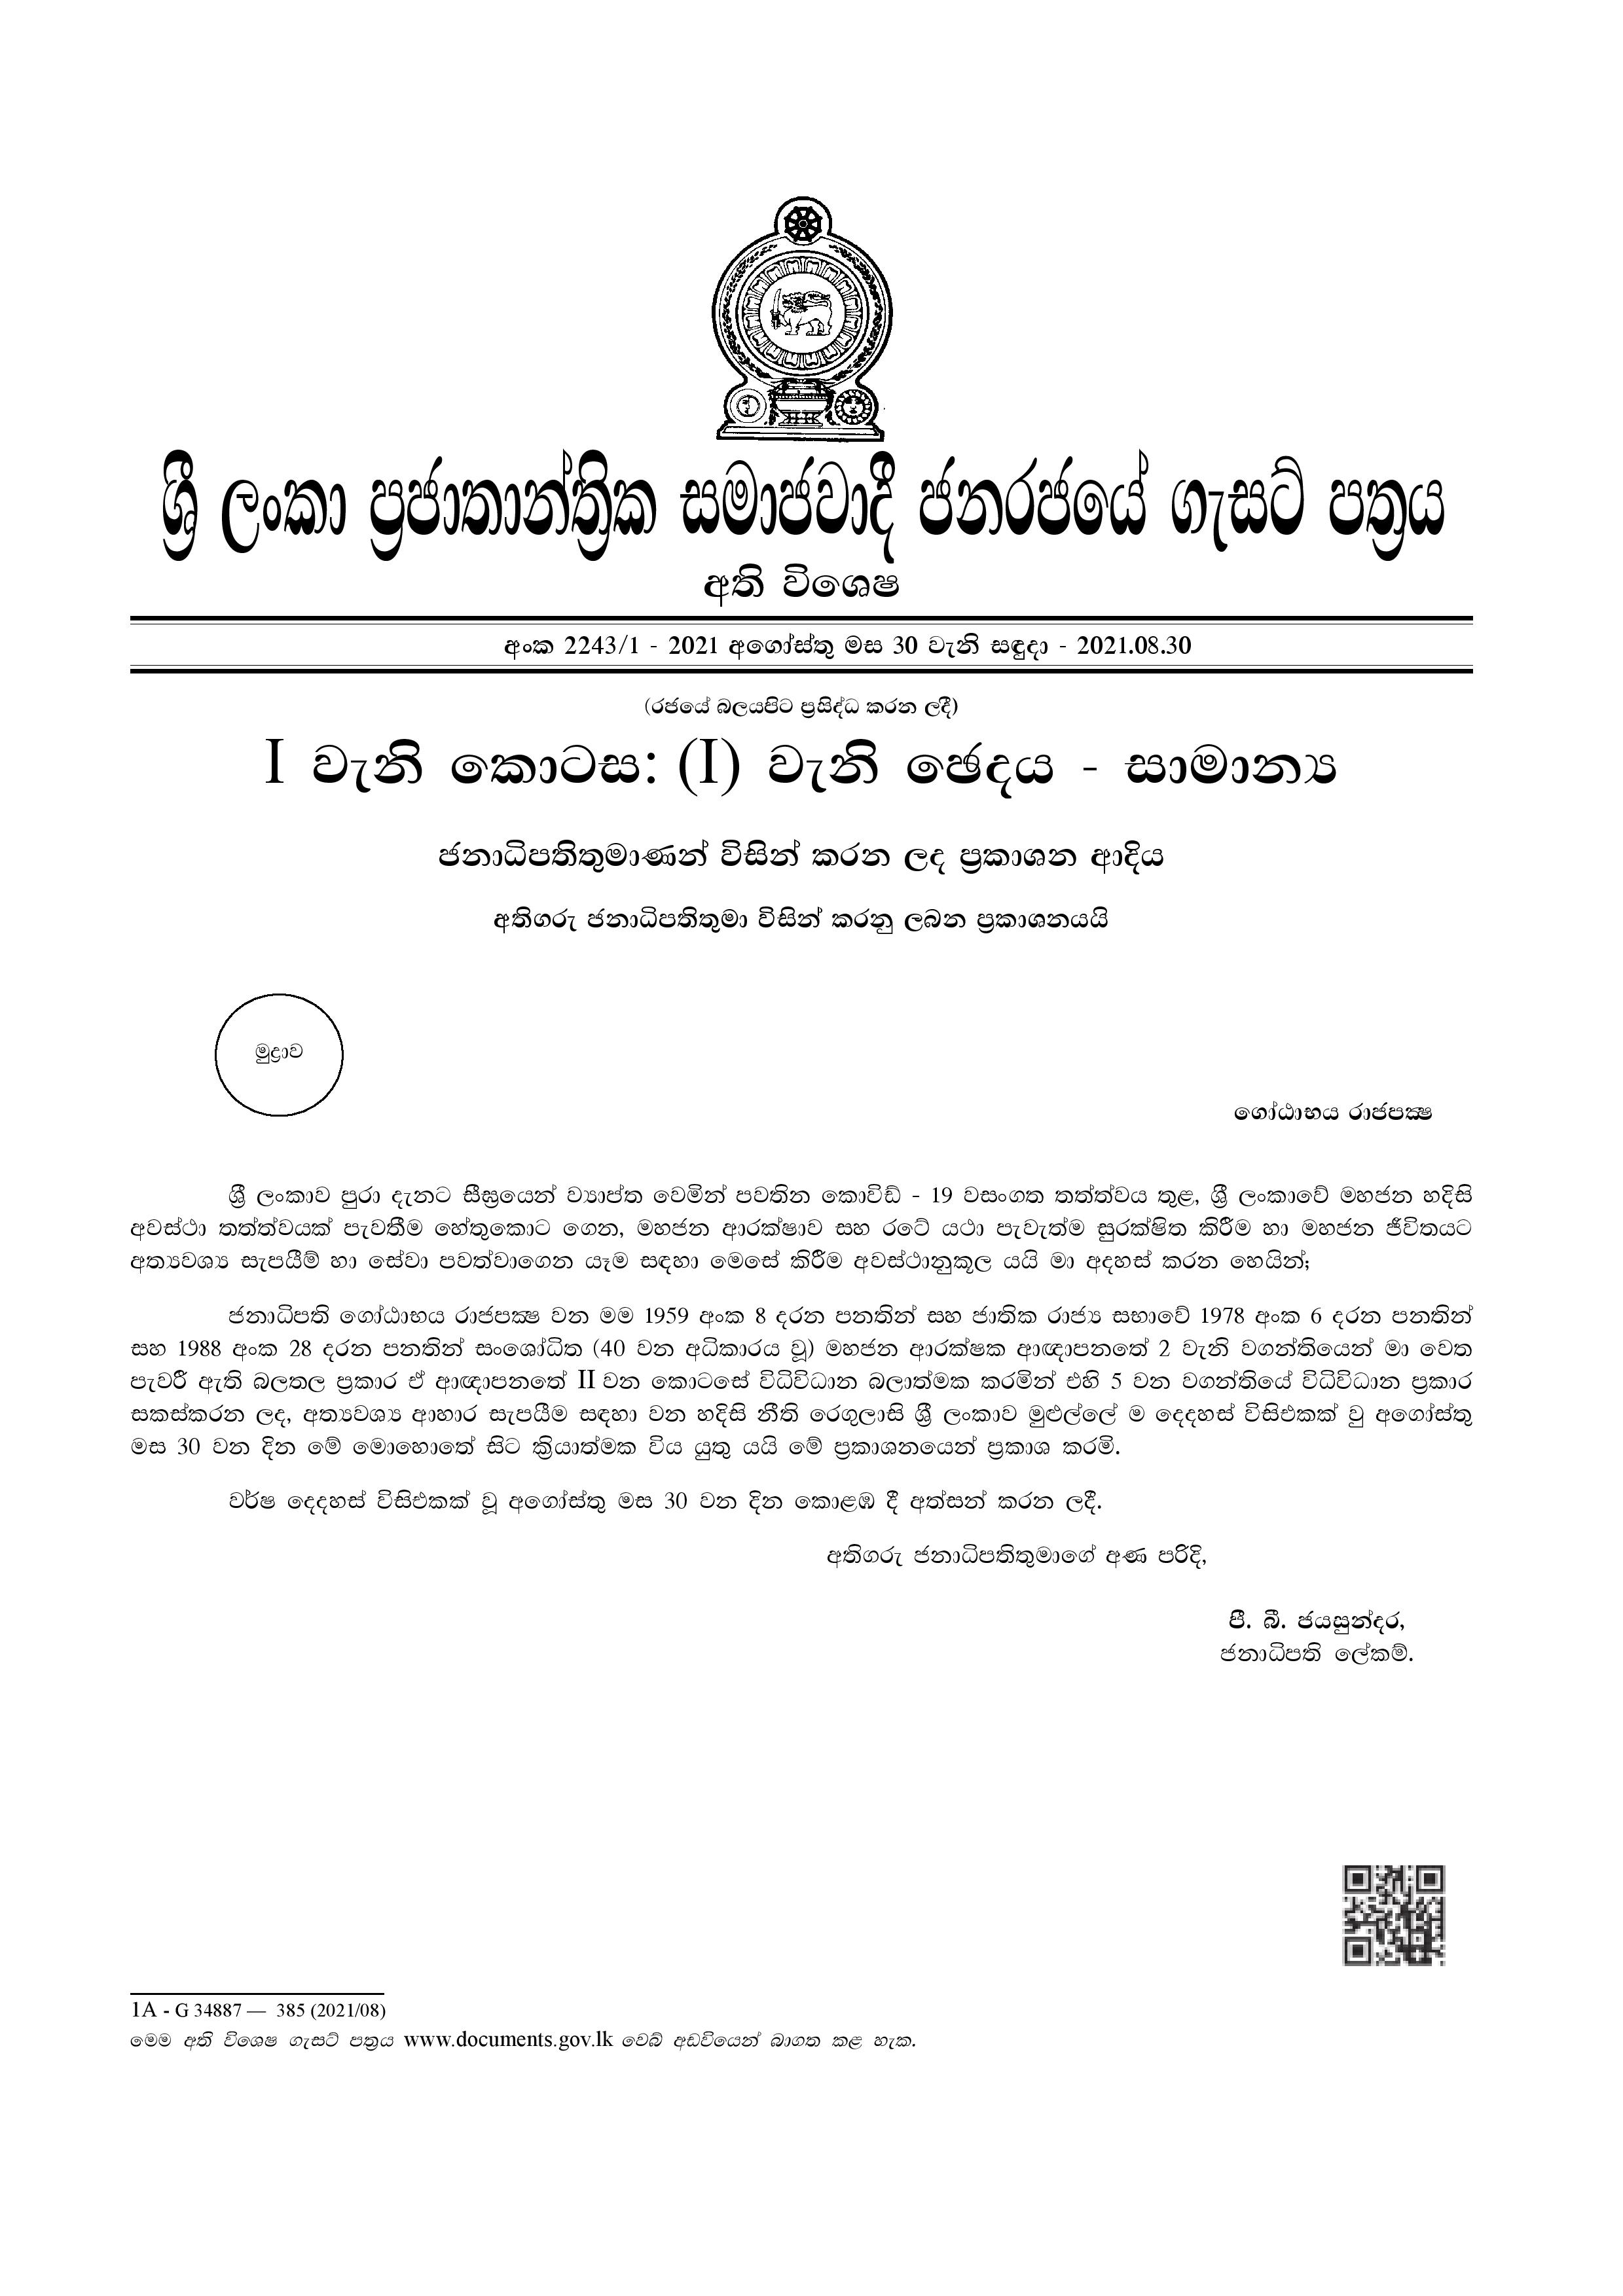 Extraordinary Gazette on Emergency Regulations for the supply of essential foods issued